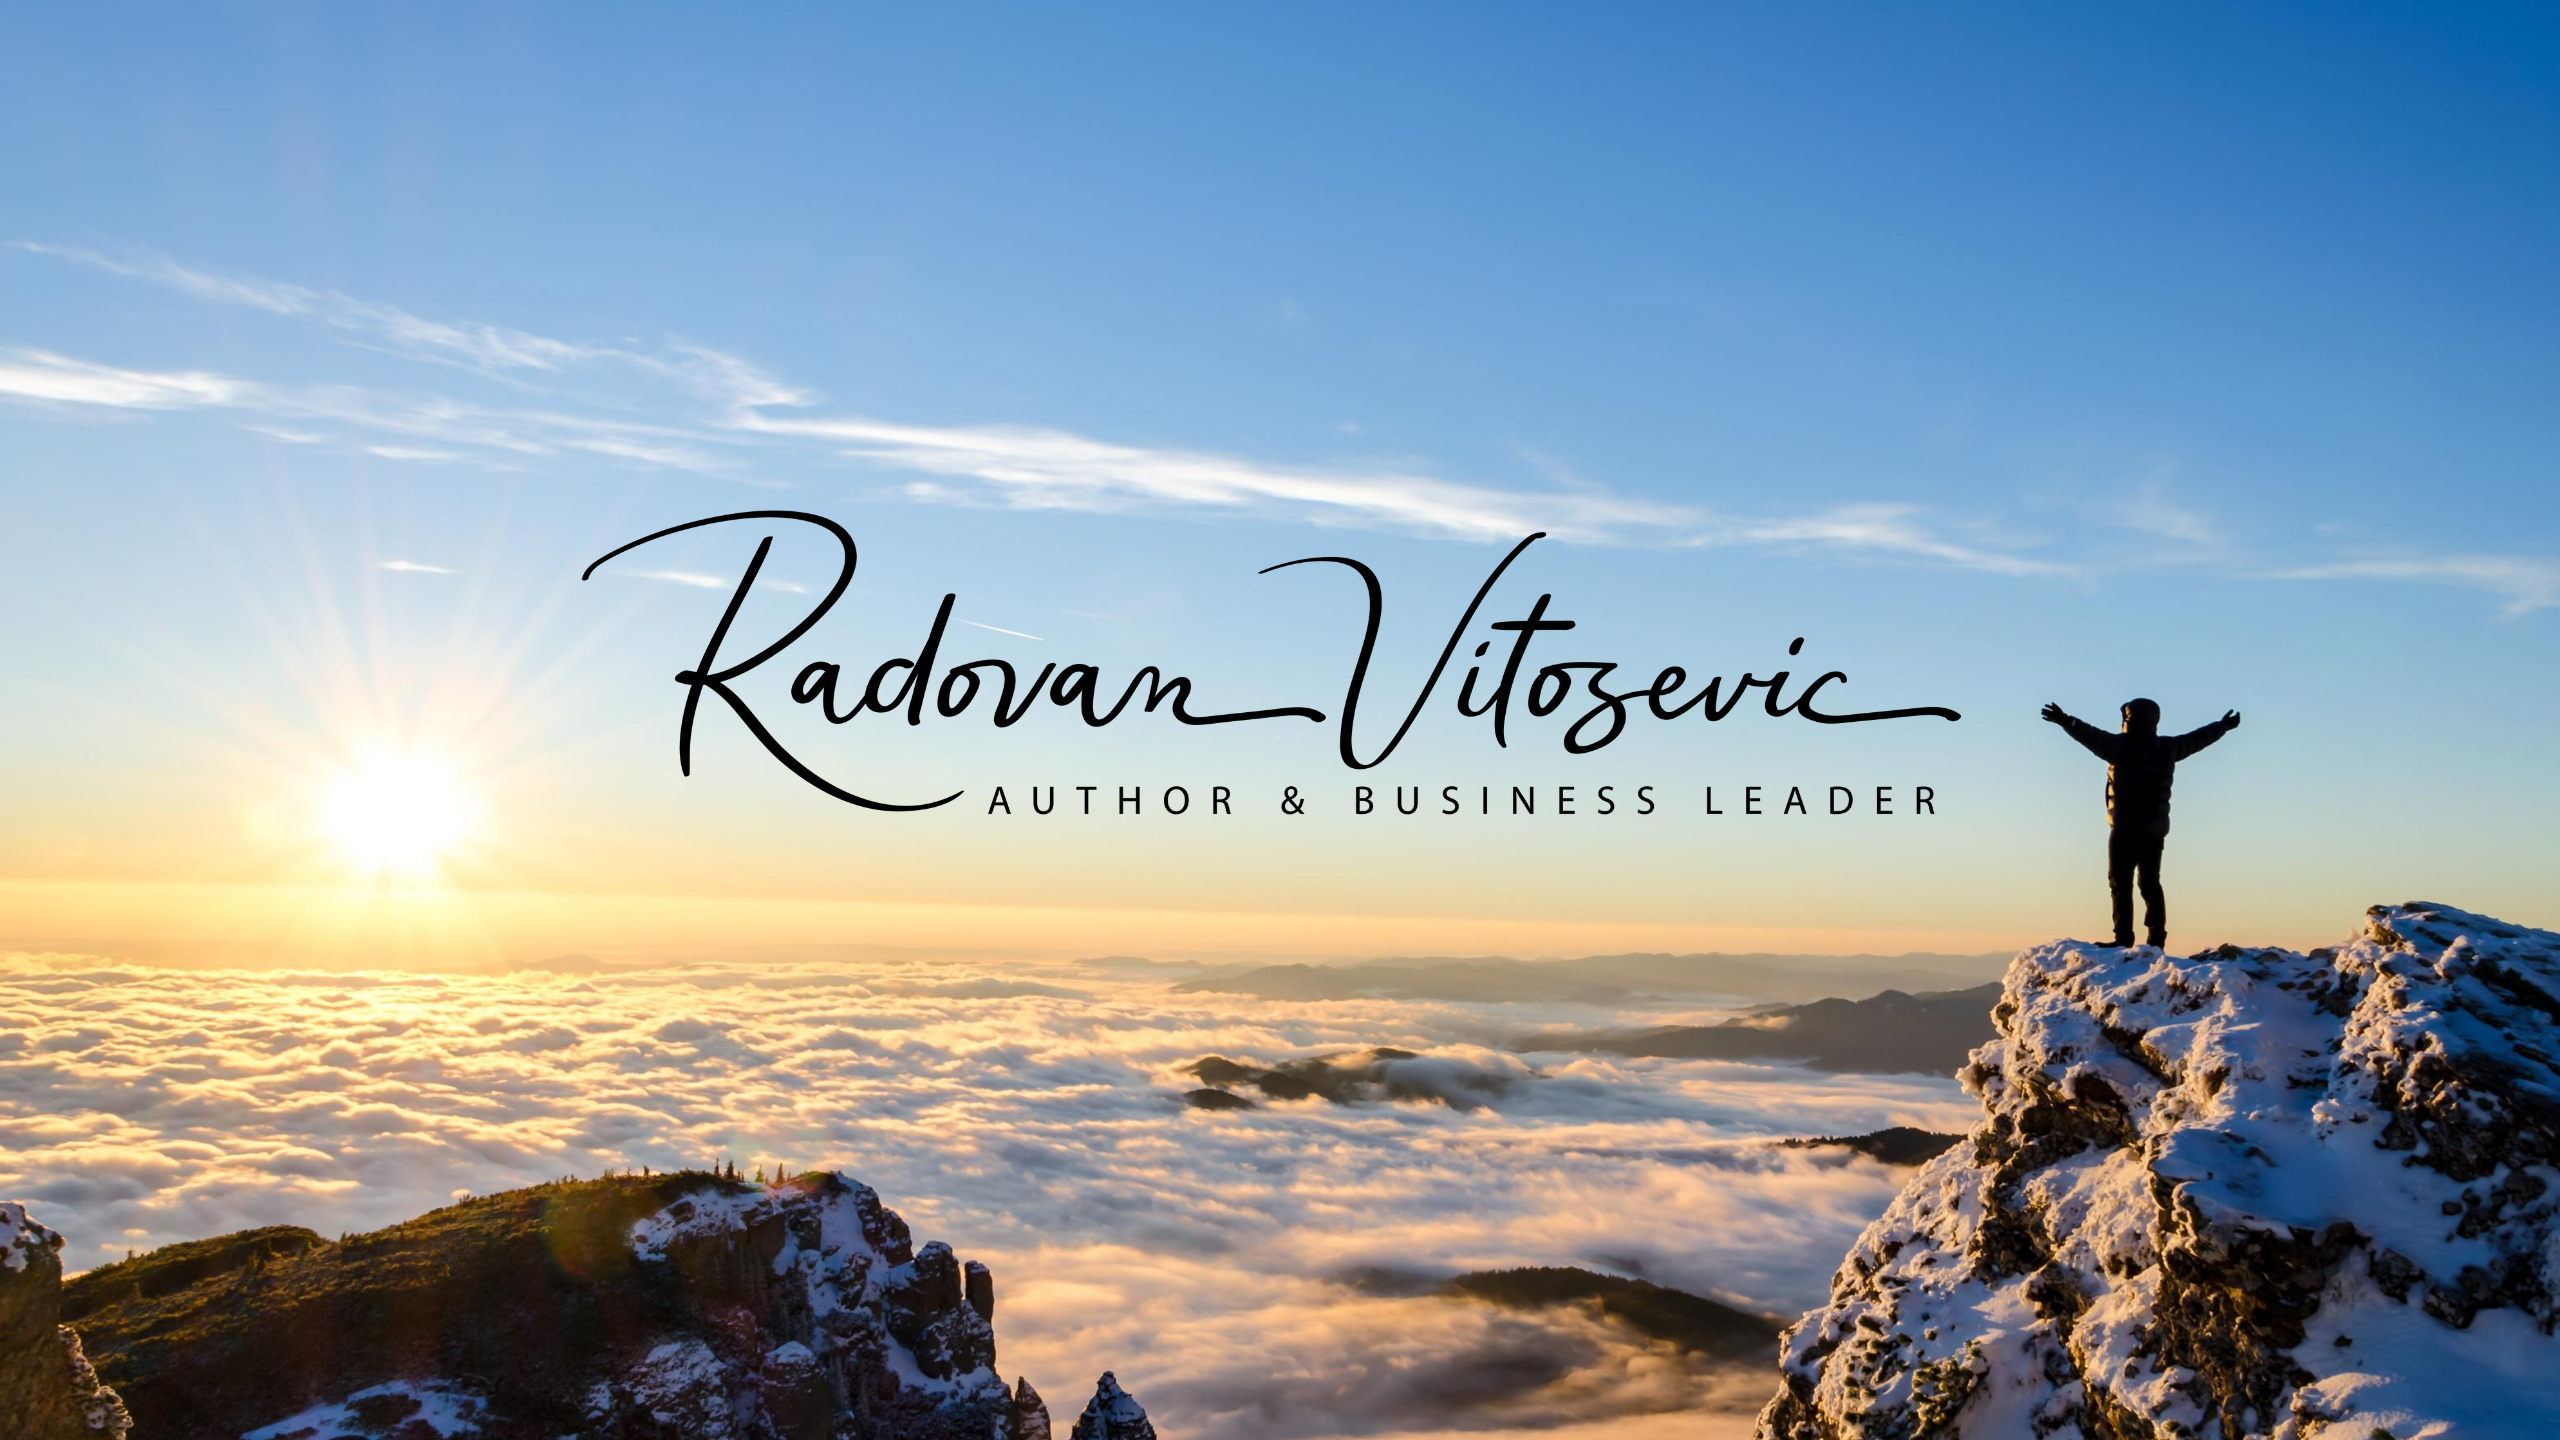 Radovan Vitosevic